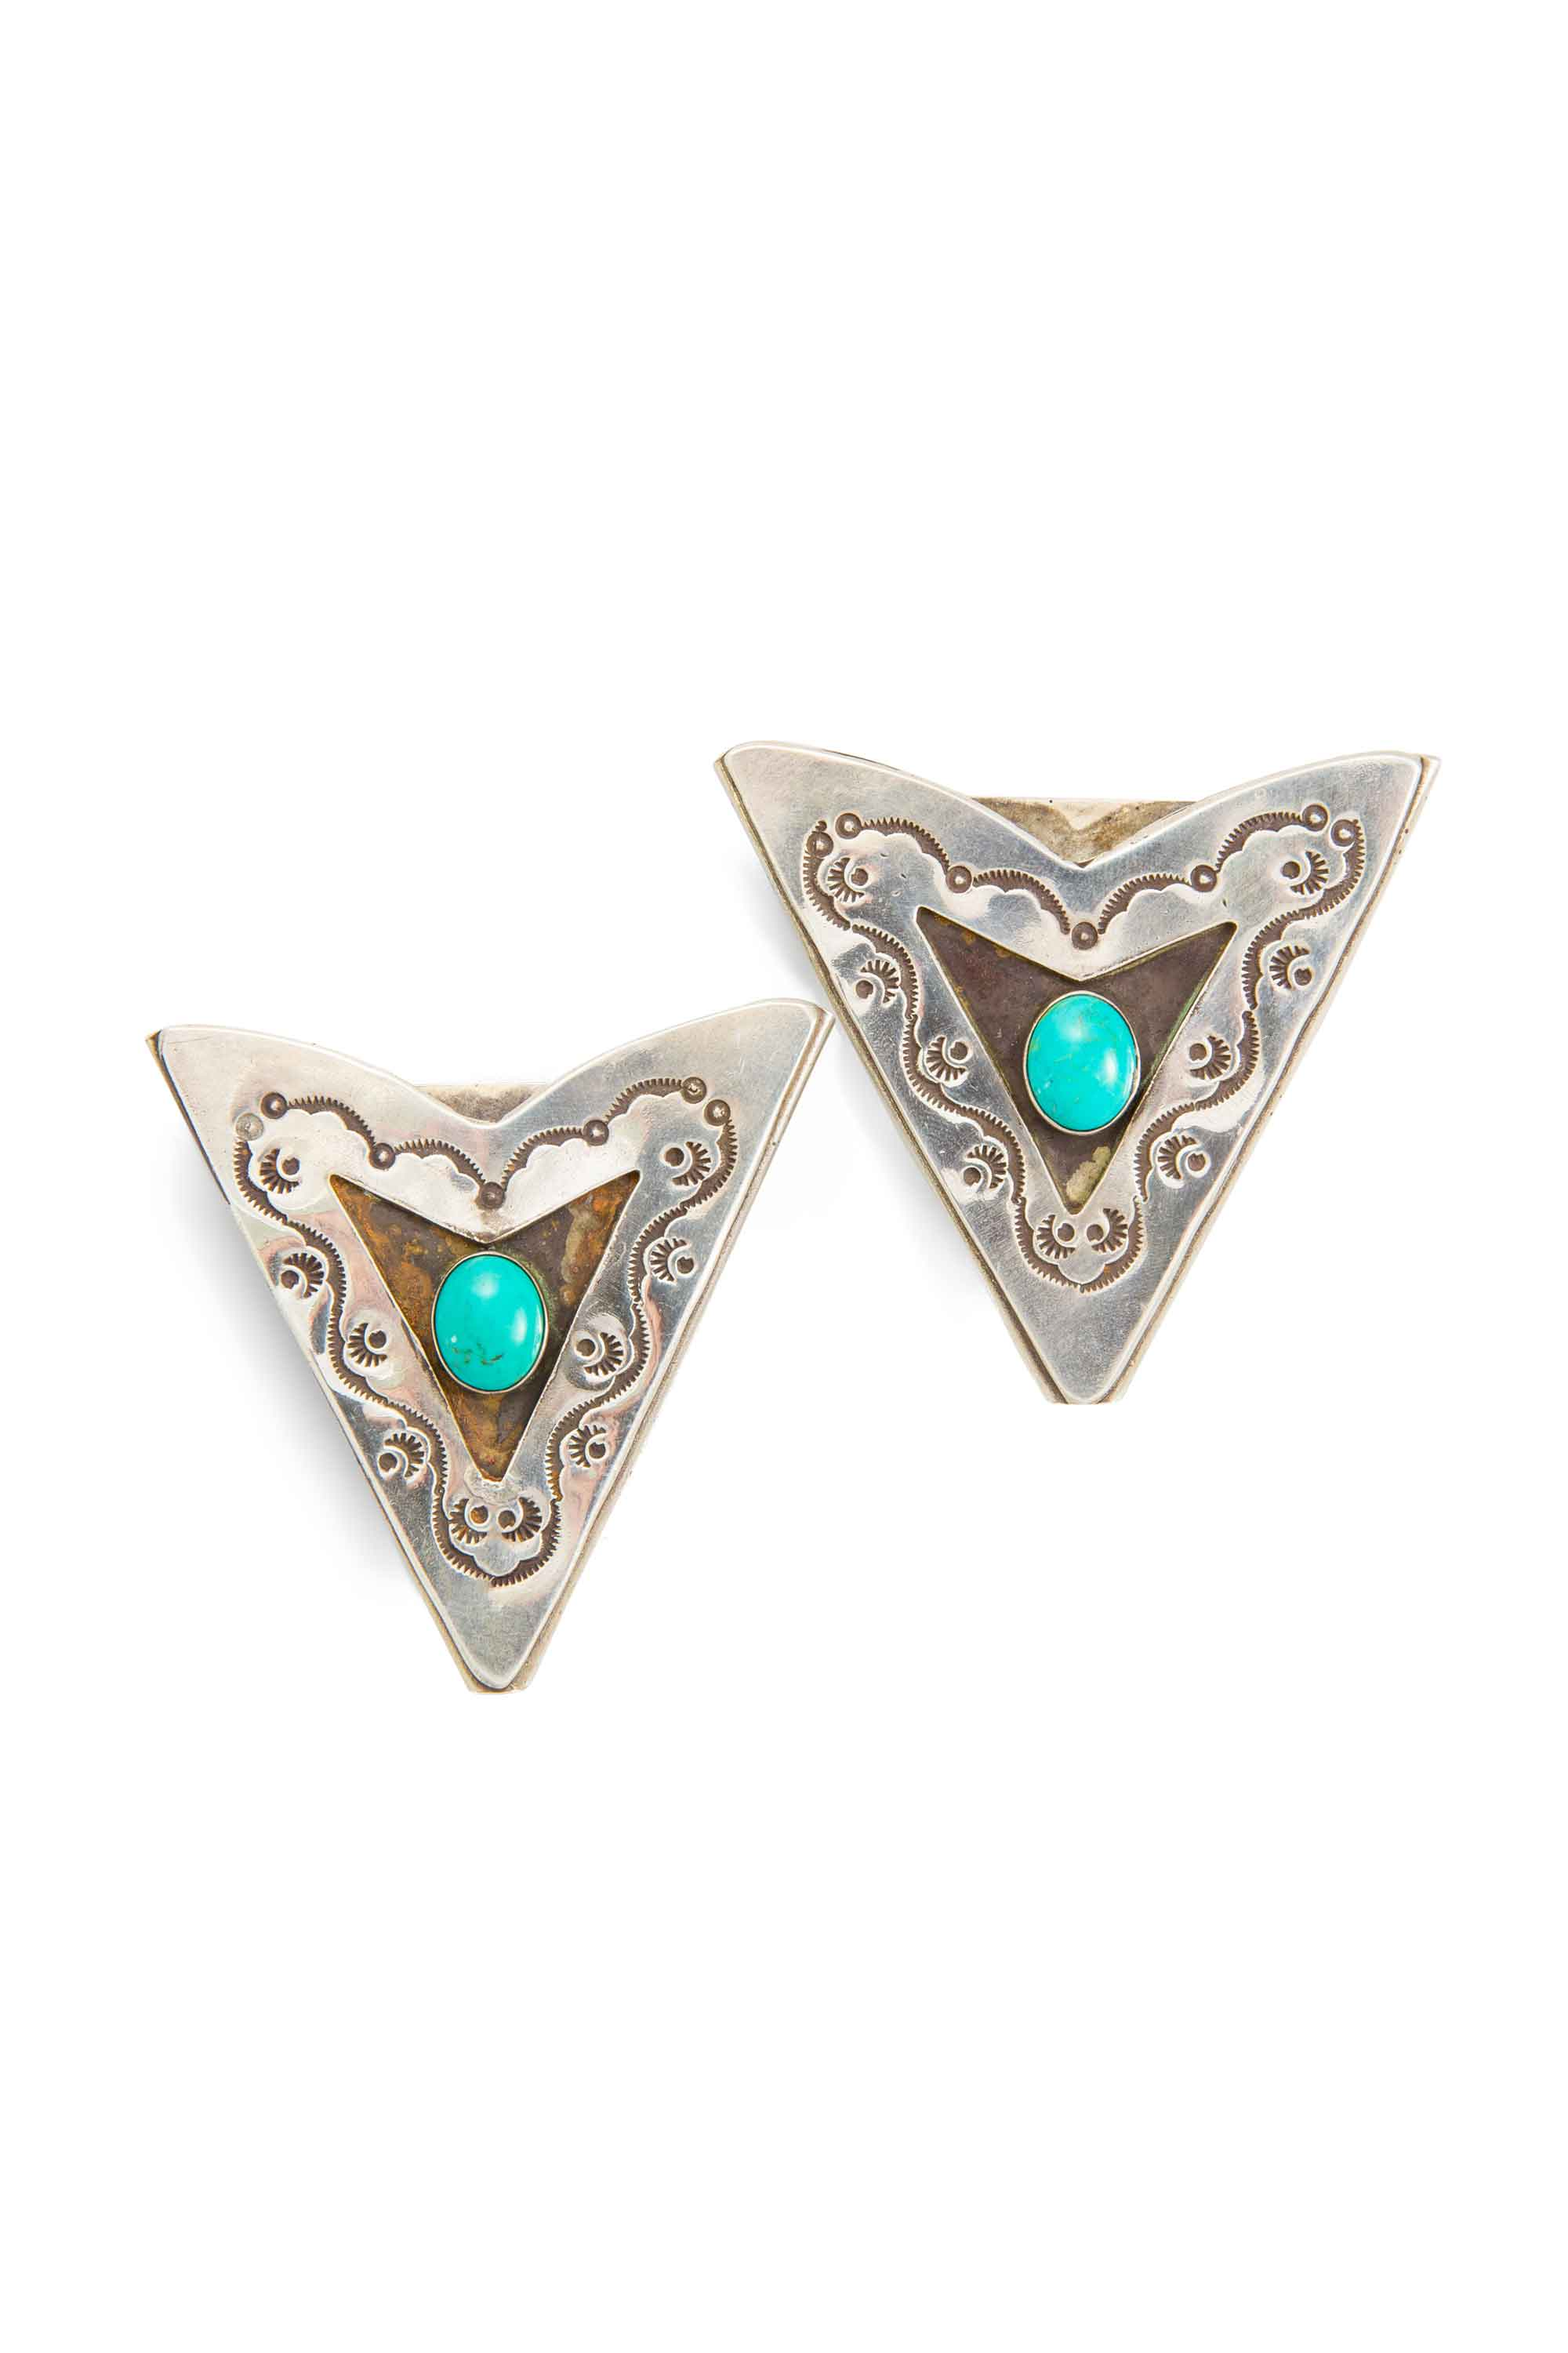 Collar Tips, Sterling Silver & Turquoise, Collection,  Jack's, 355